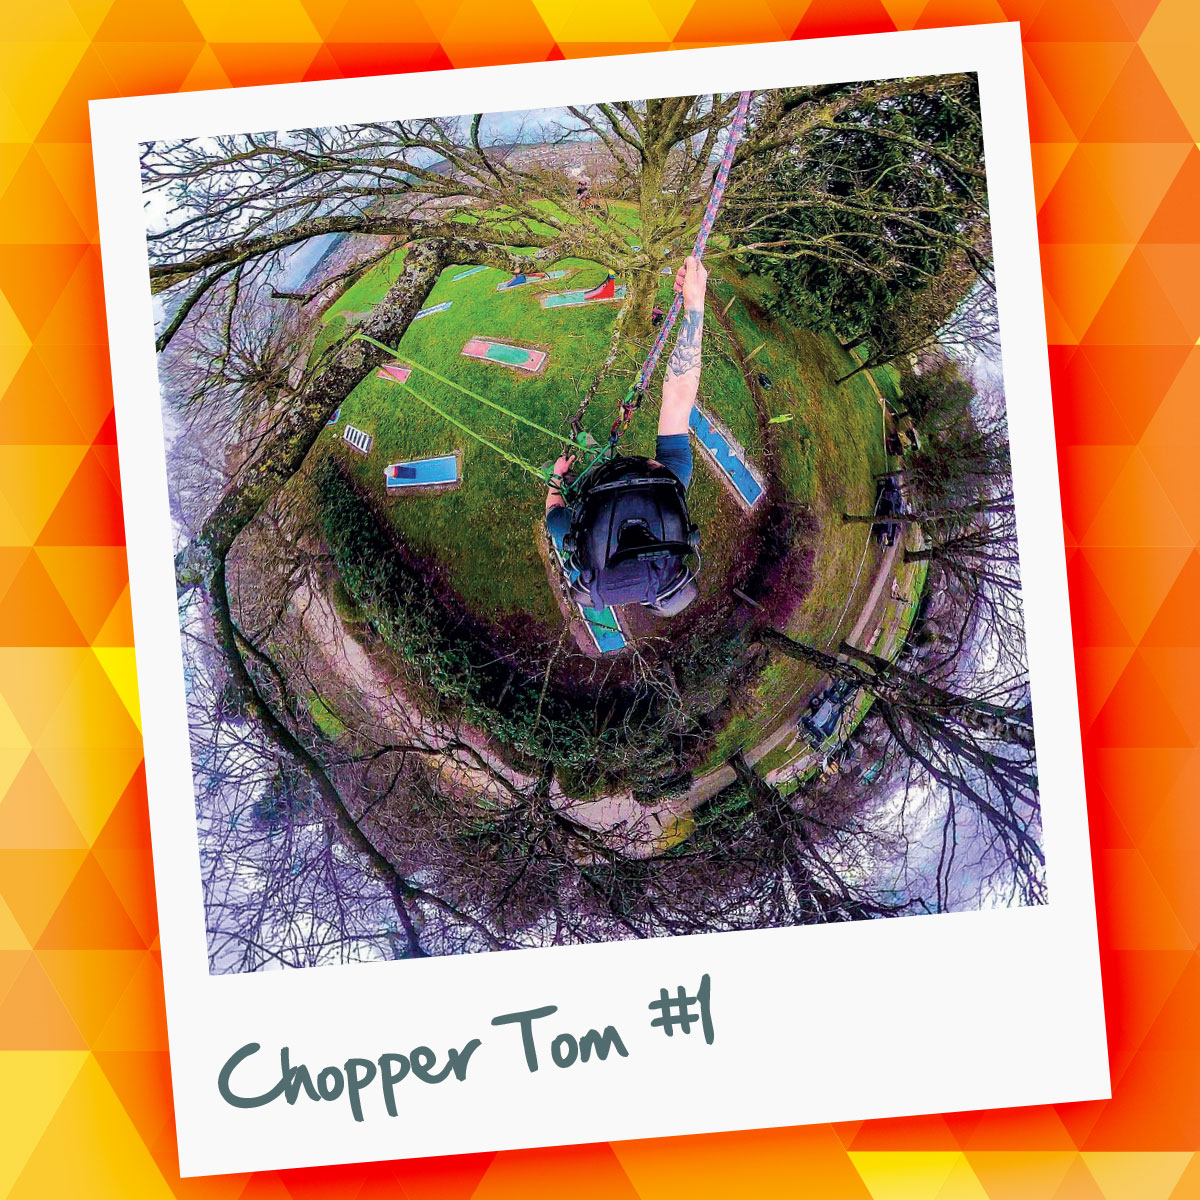 Chopper Tom #1